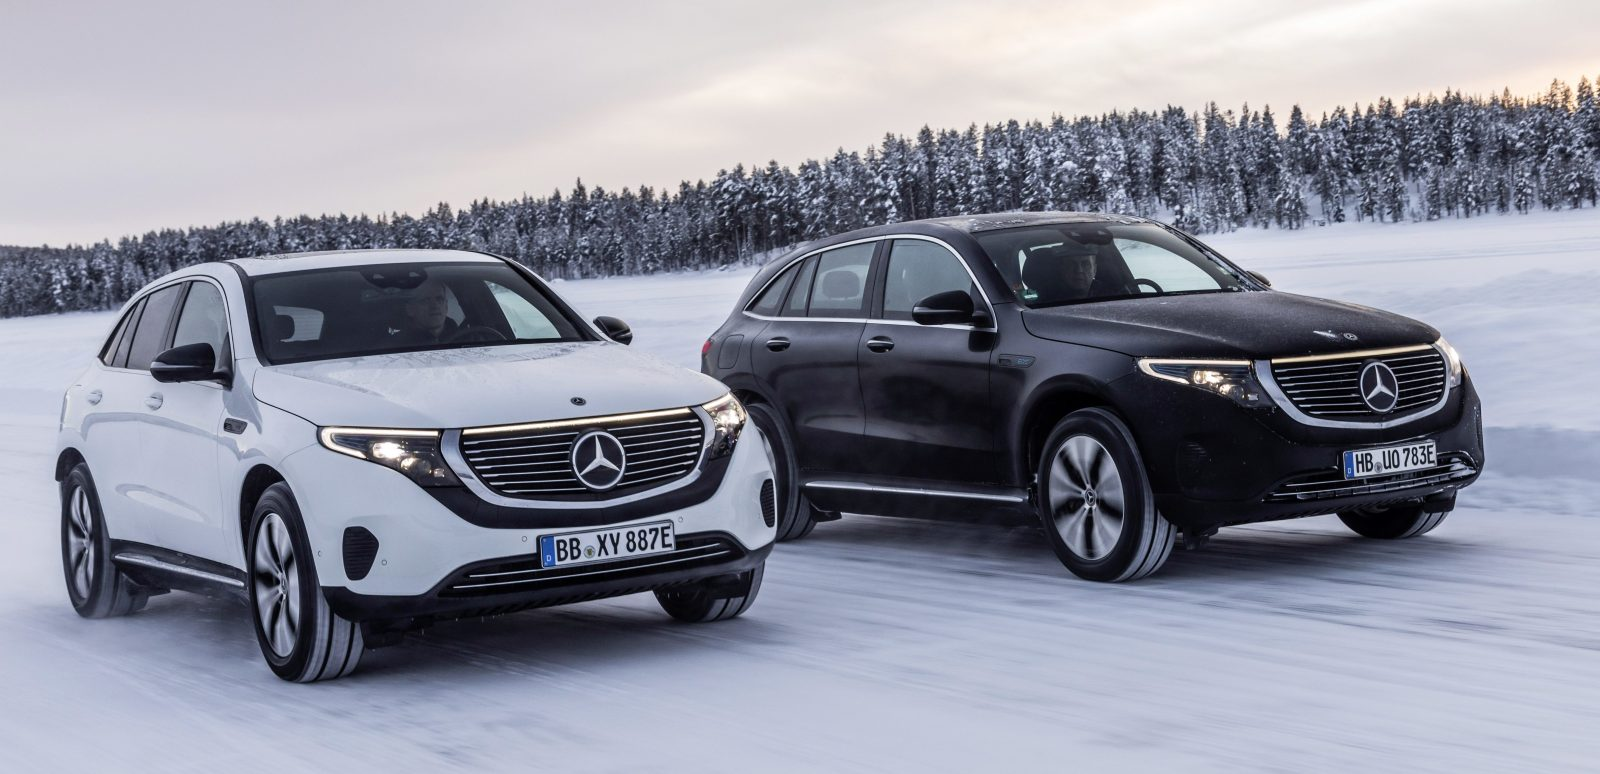 Mercedes Benz Says Eqc Is Still Coming On Time Winter Tests Electric Suv